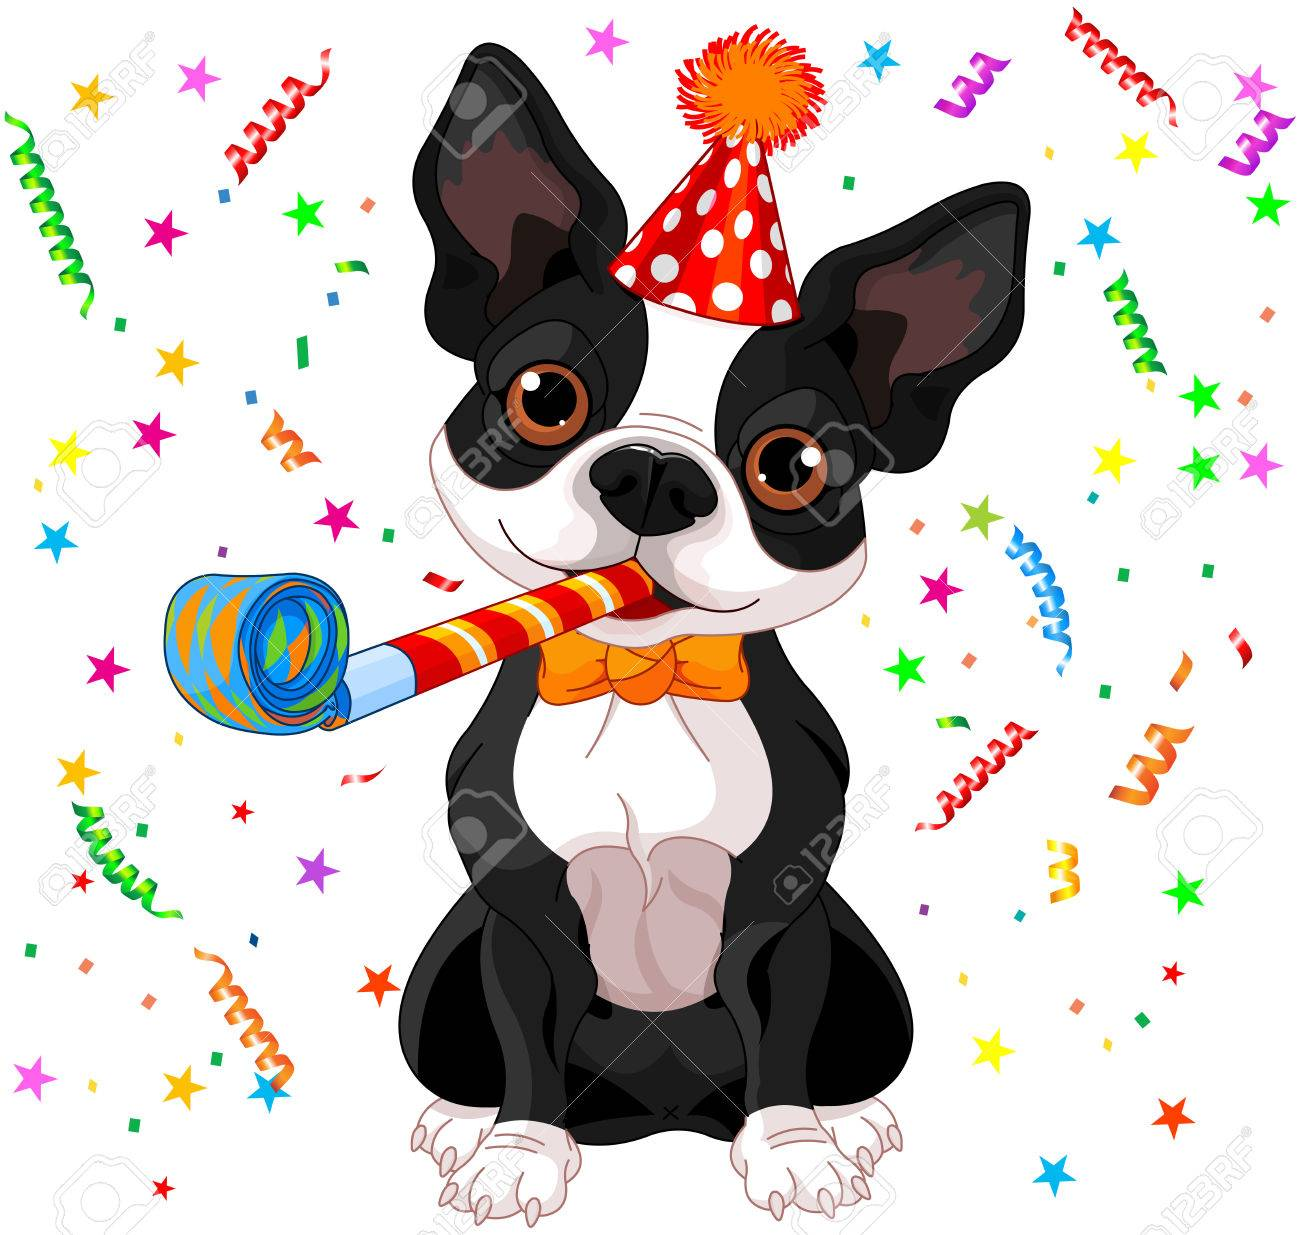 Syndrome de la queue de cheval 35588778-illustration-of-cute-boston-terrier-celebrating